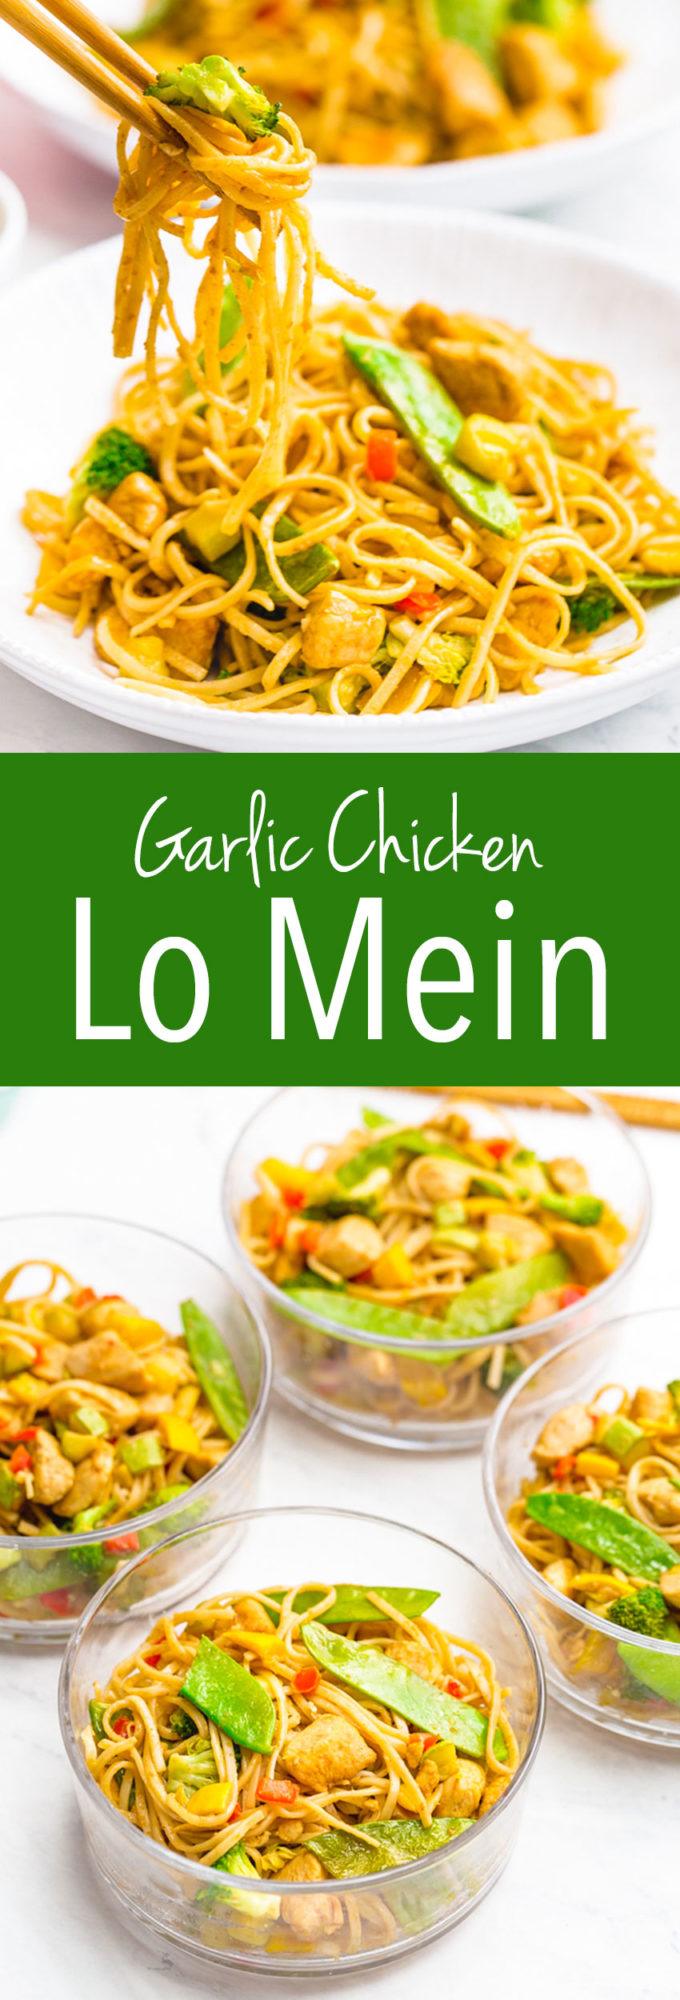 Garlic chicken Low Mein is an easy asian inspired meal